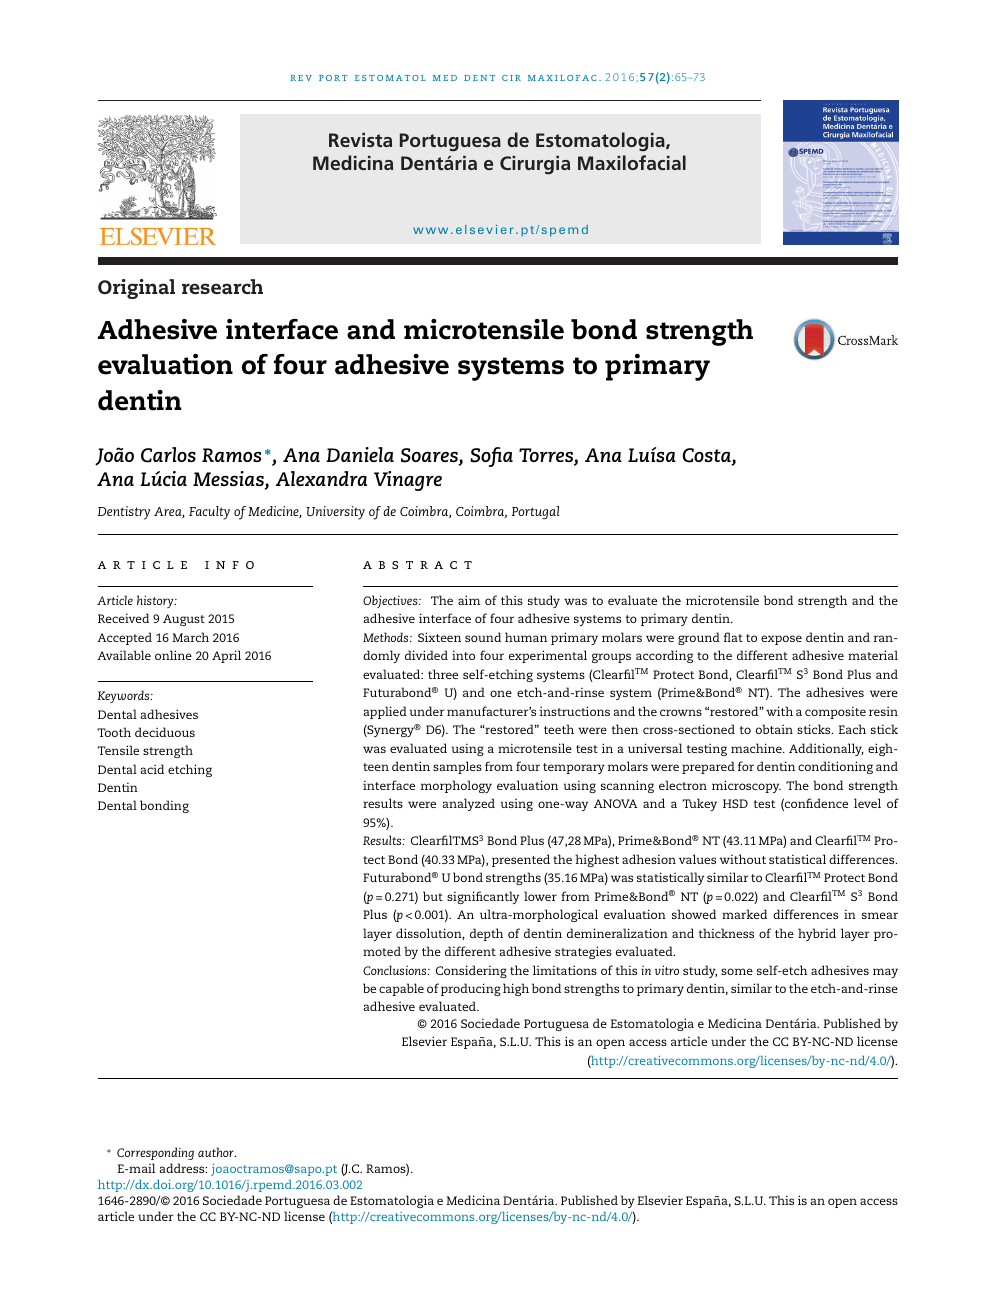 Adhesive Interface And Microtensile Bond Strength Evaluation Of Four